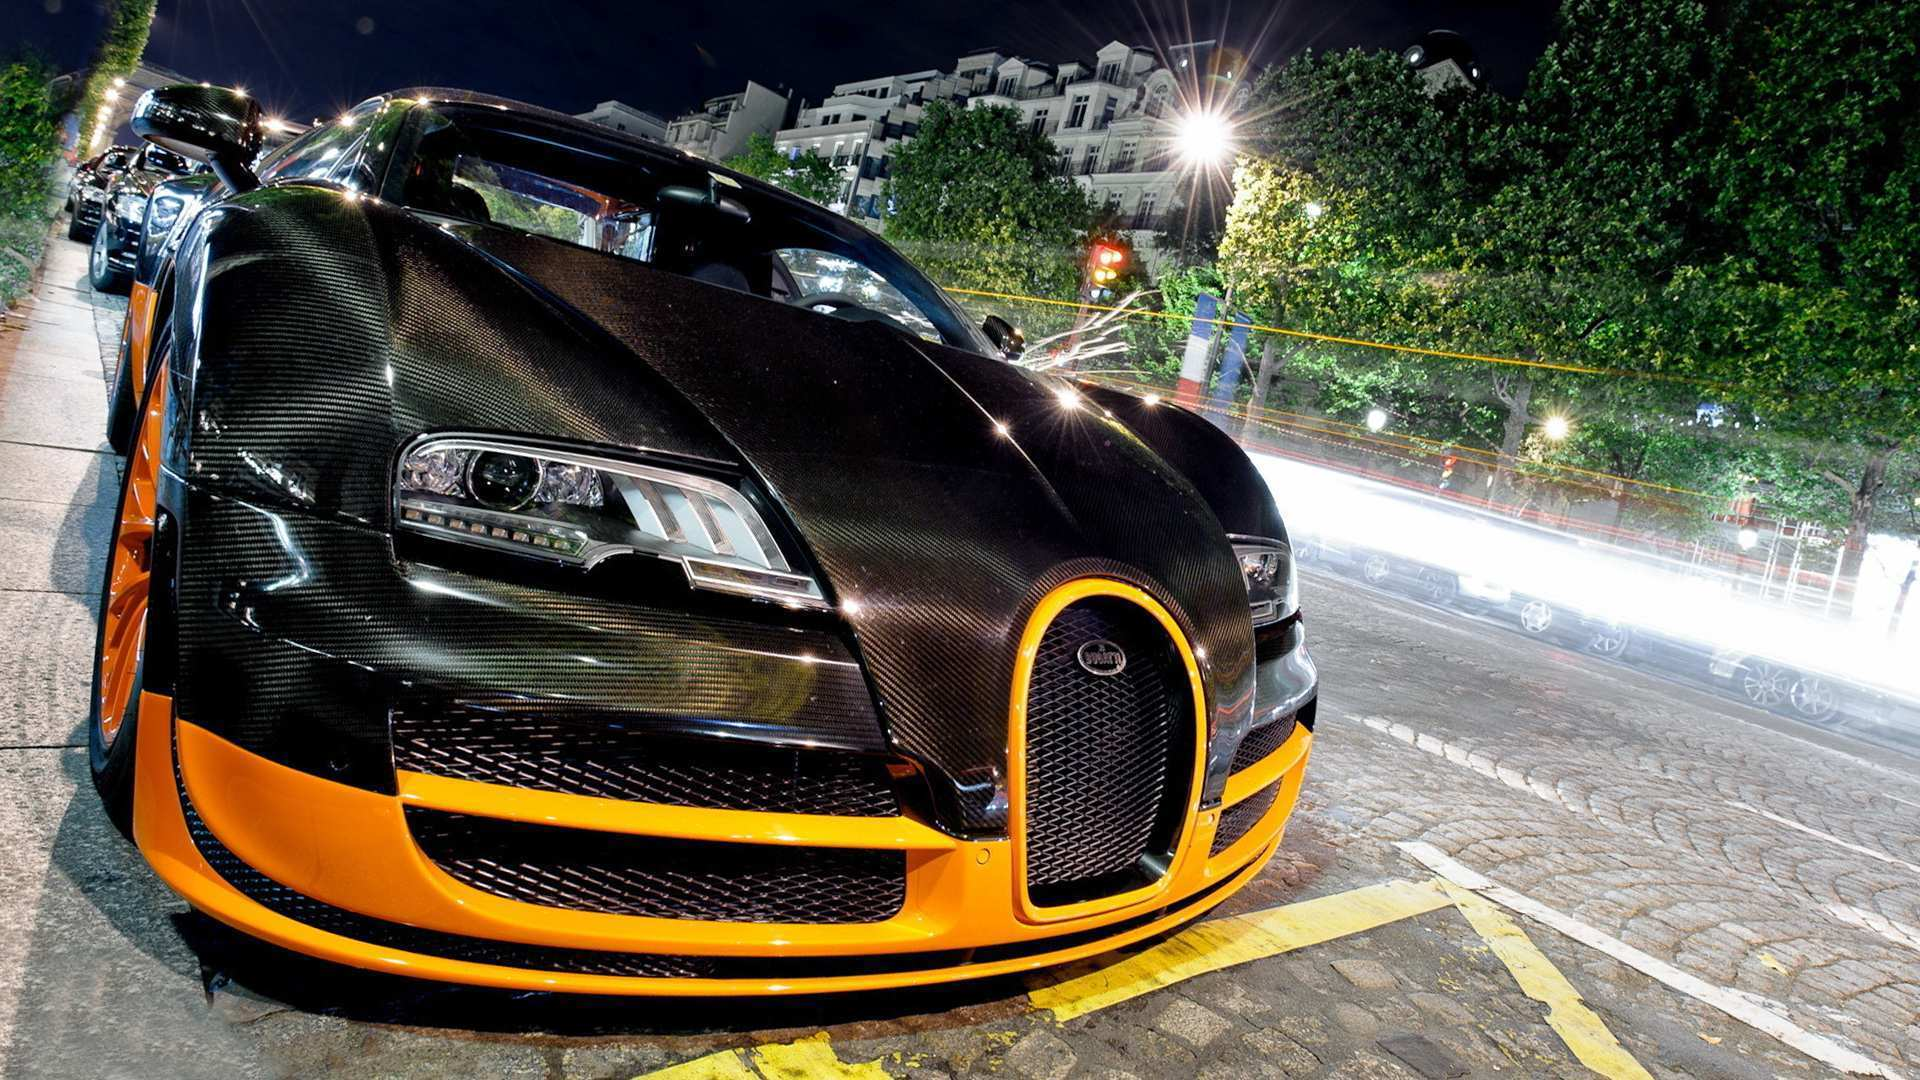 72 The Best 2019 Bugatti Veyron Price And Review